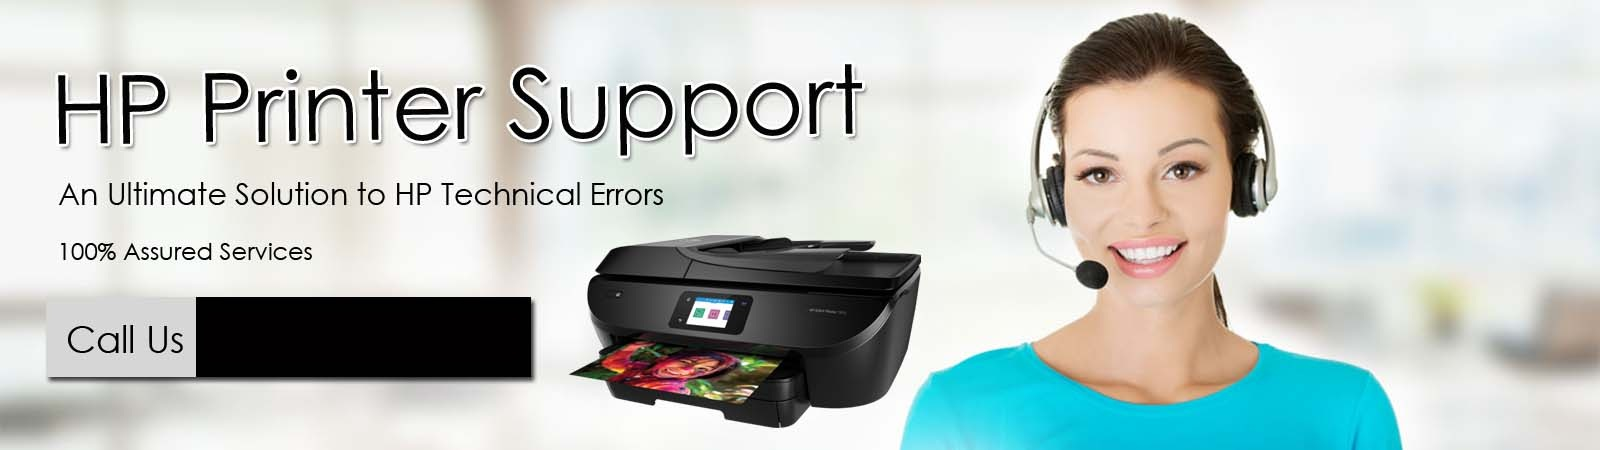 HP Printer Customer Care Number 1-800-485-4057